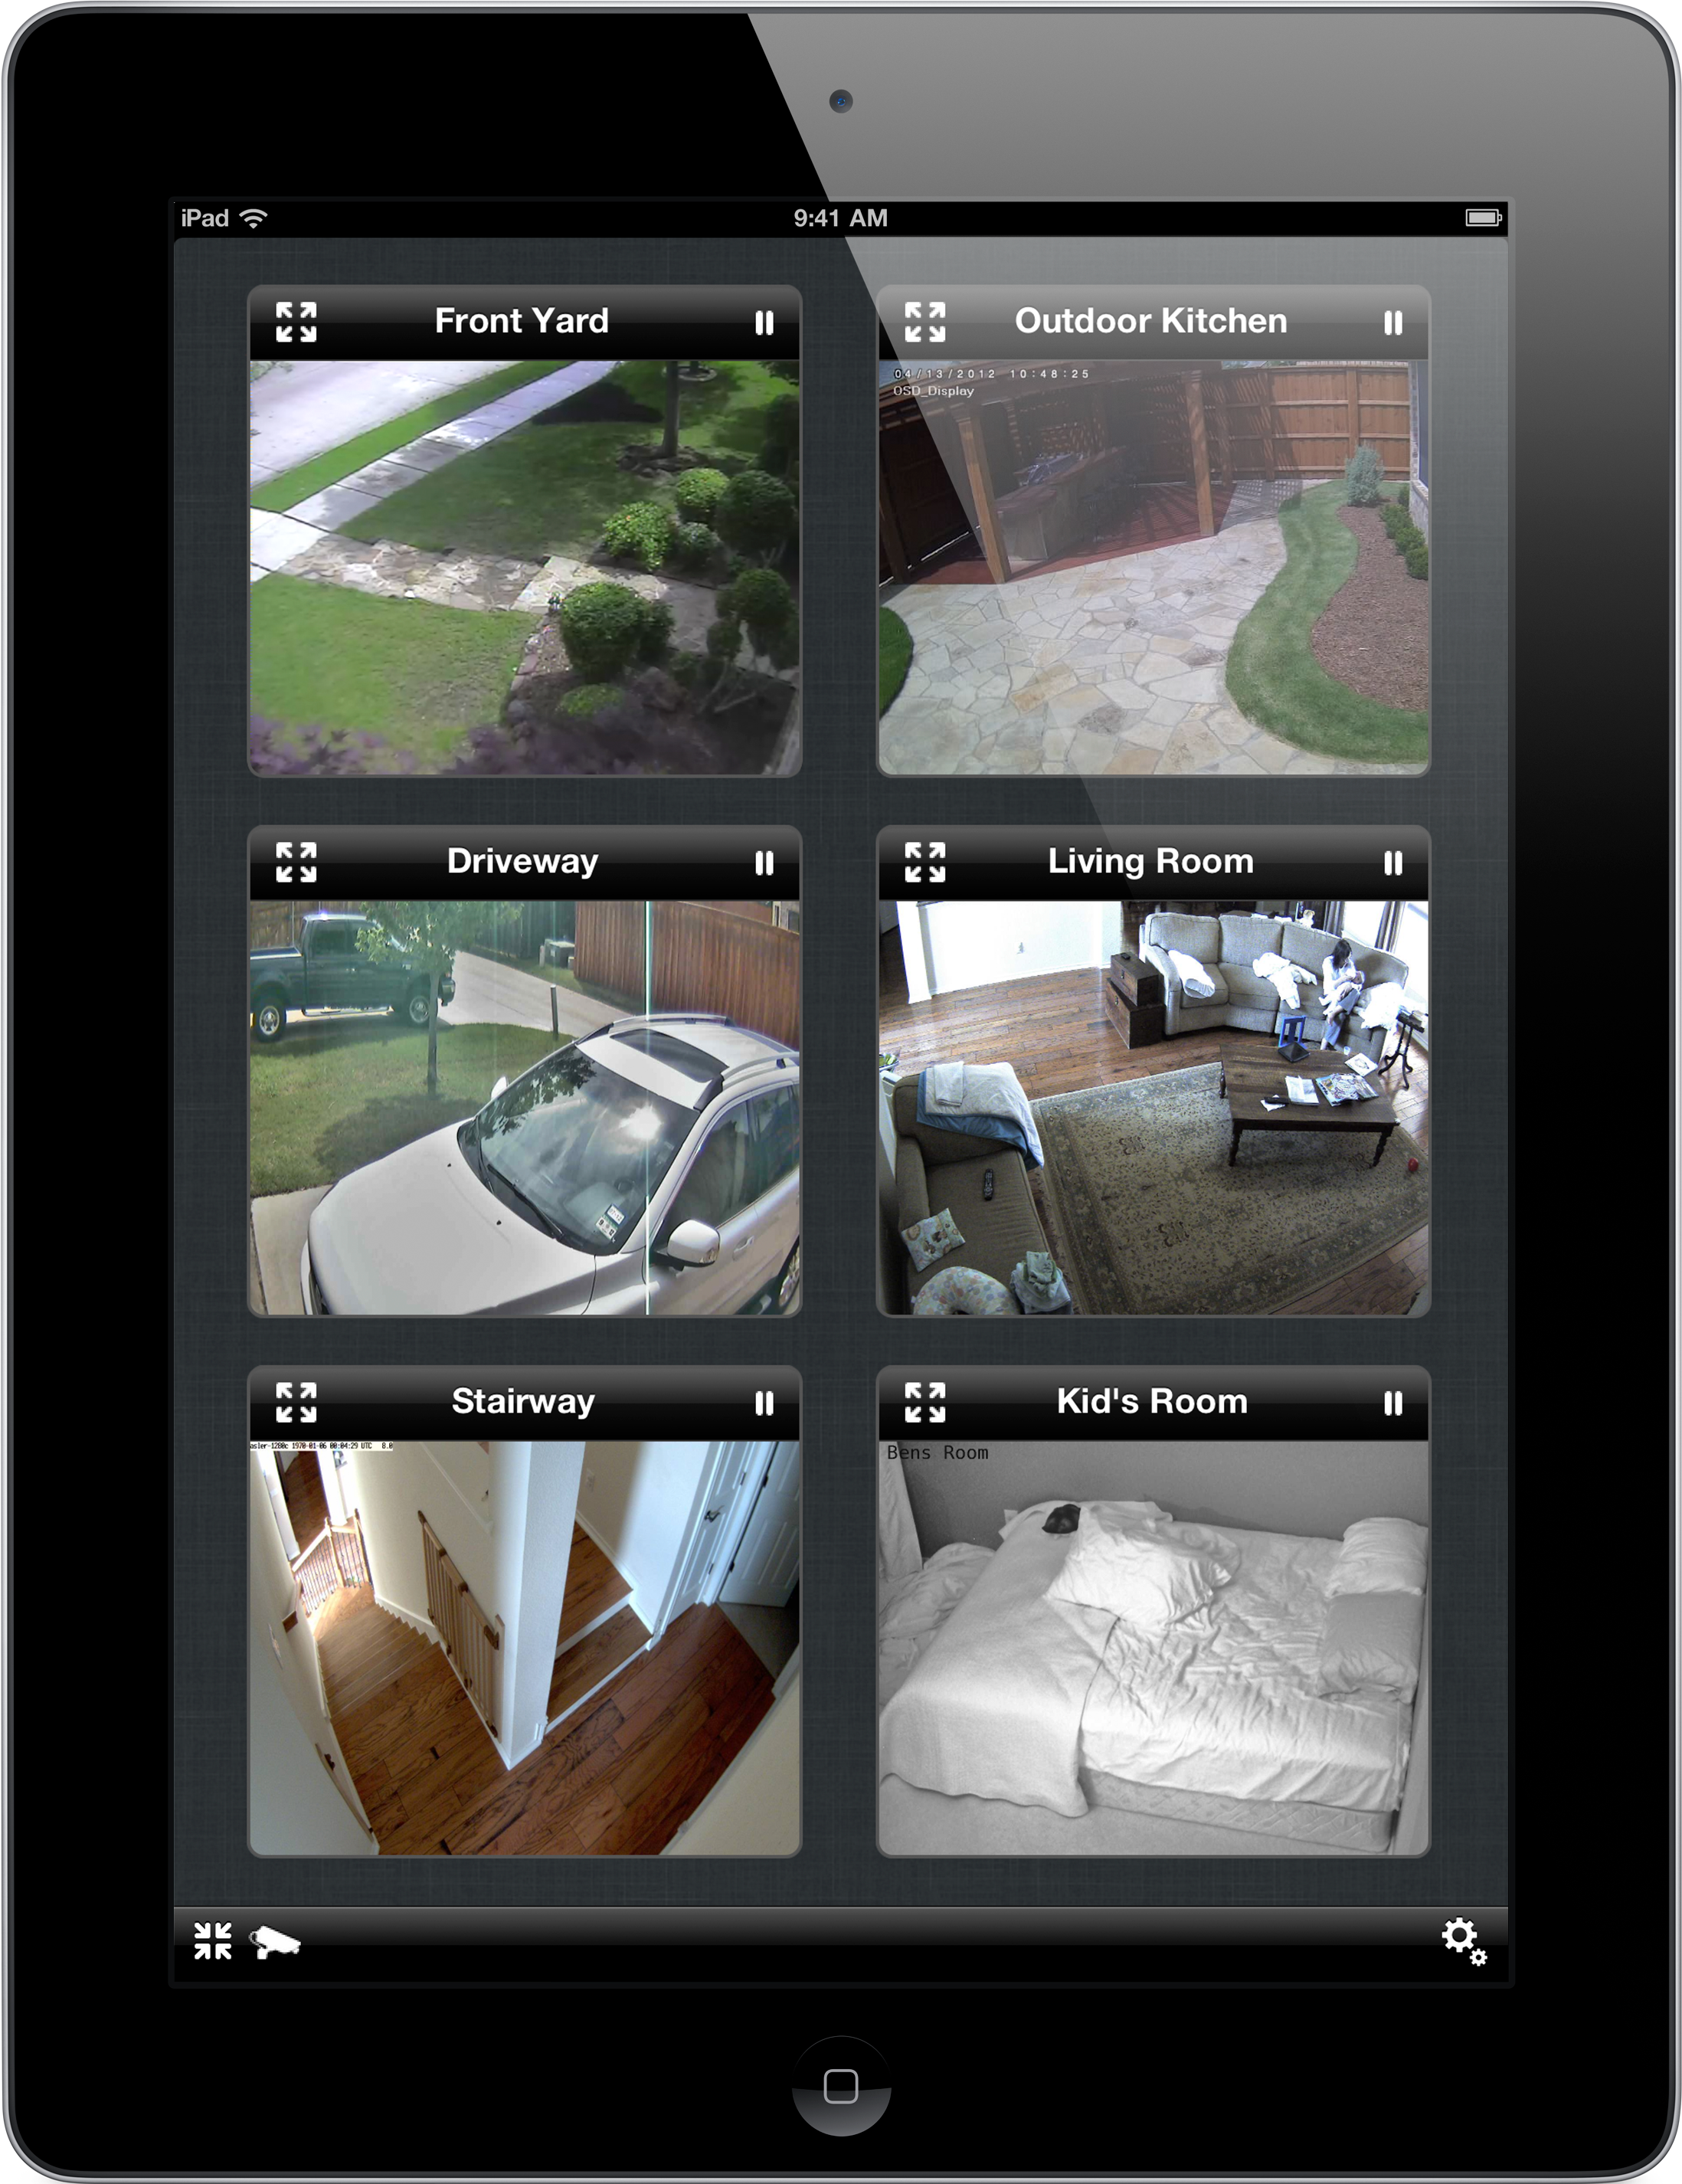 iPad-v2.8.0-Video_Grid_Landscape